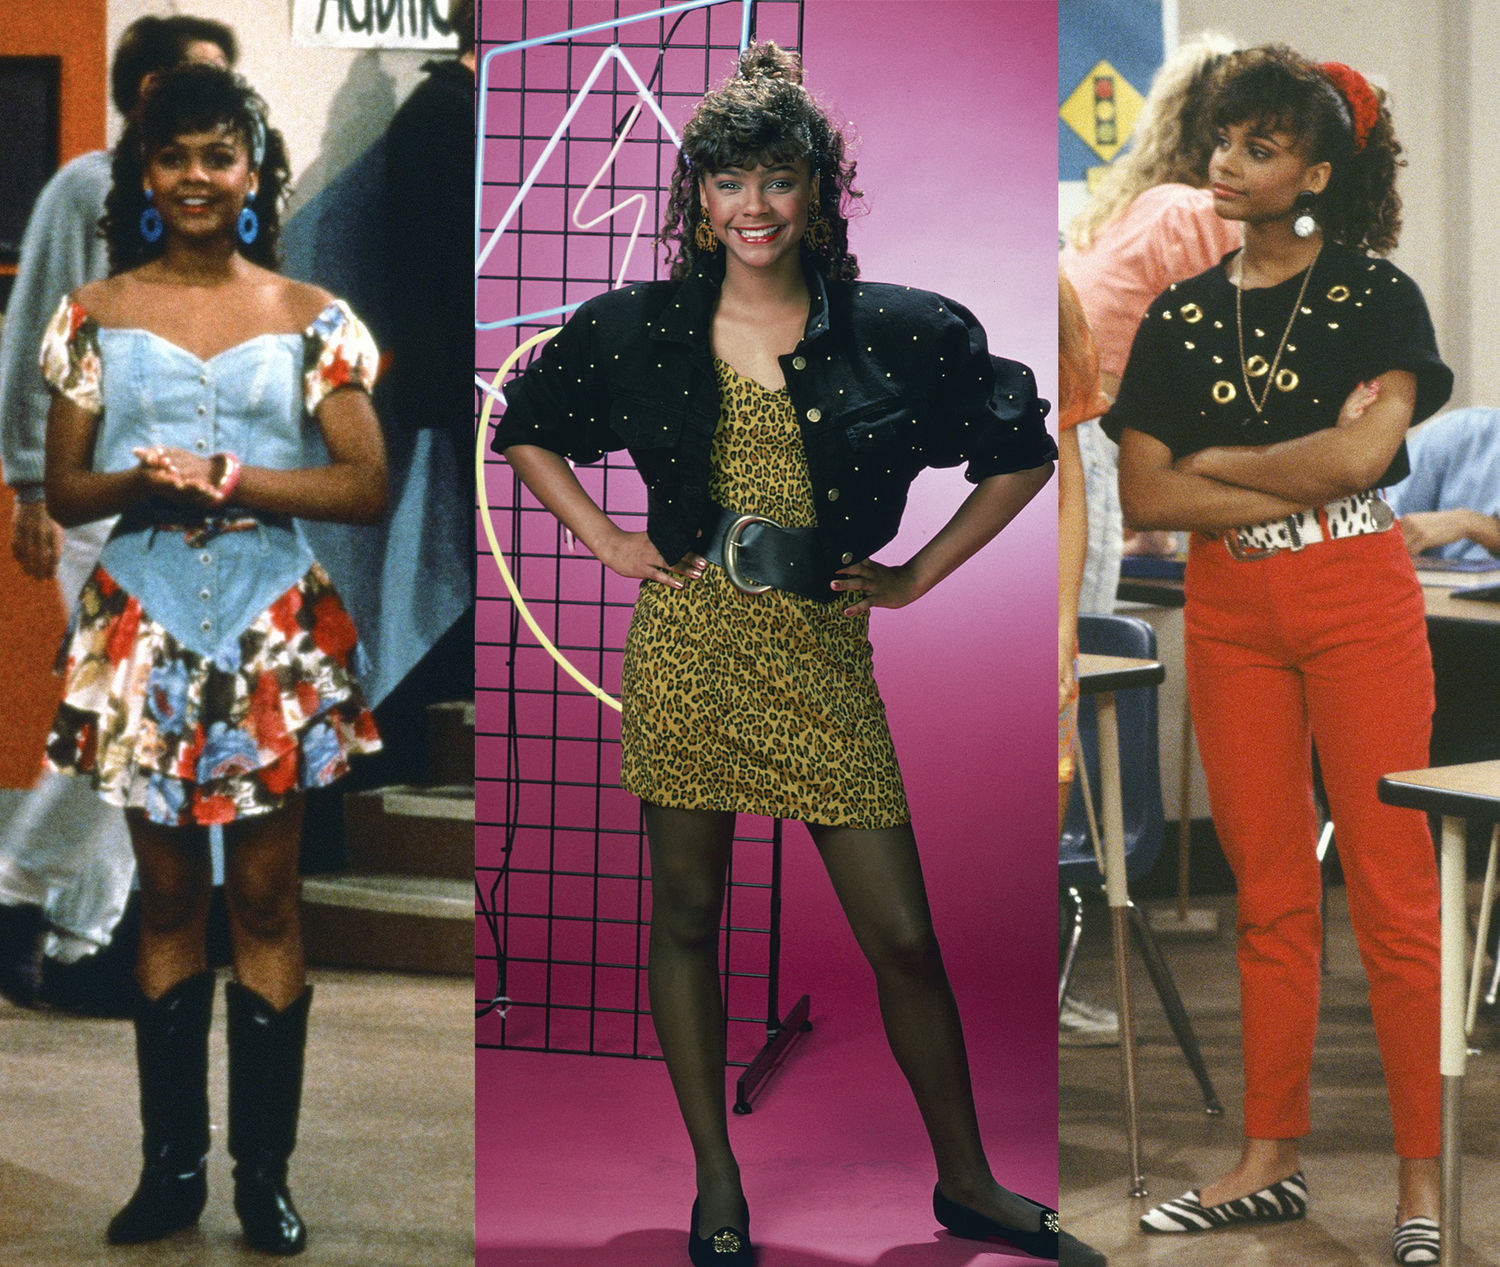 lisa-turtle-saved-by-the-bell-flashback-friday-main